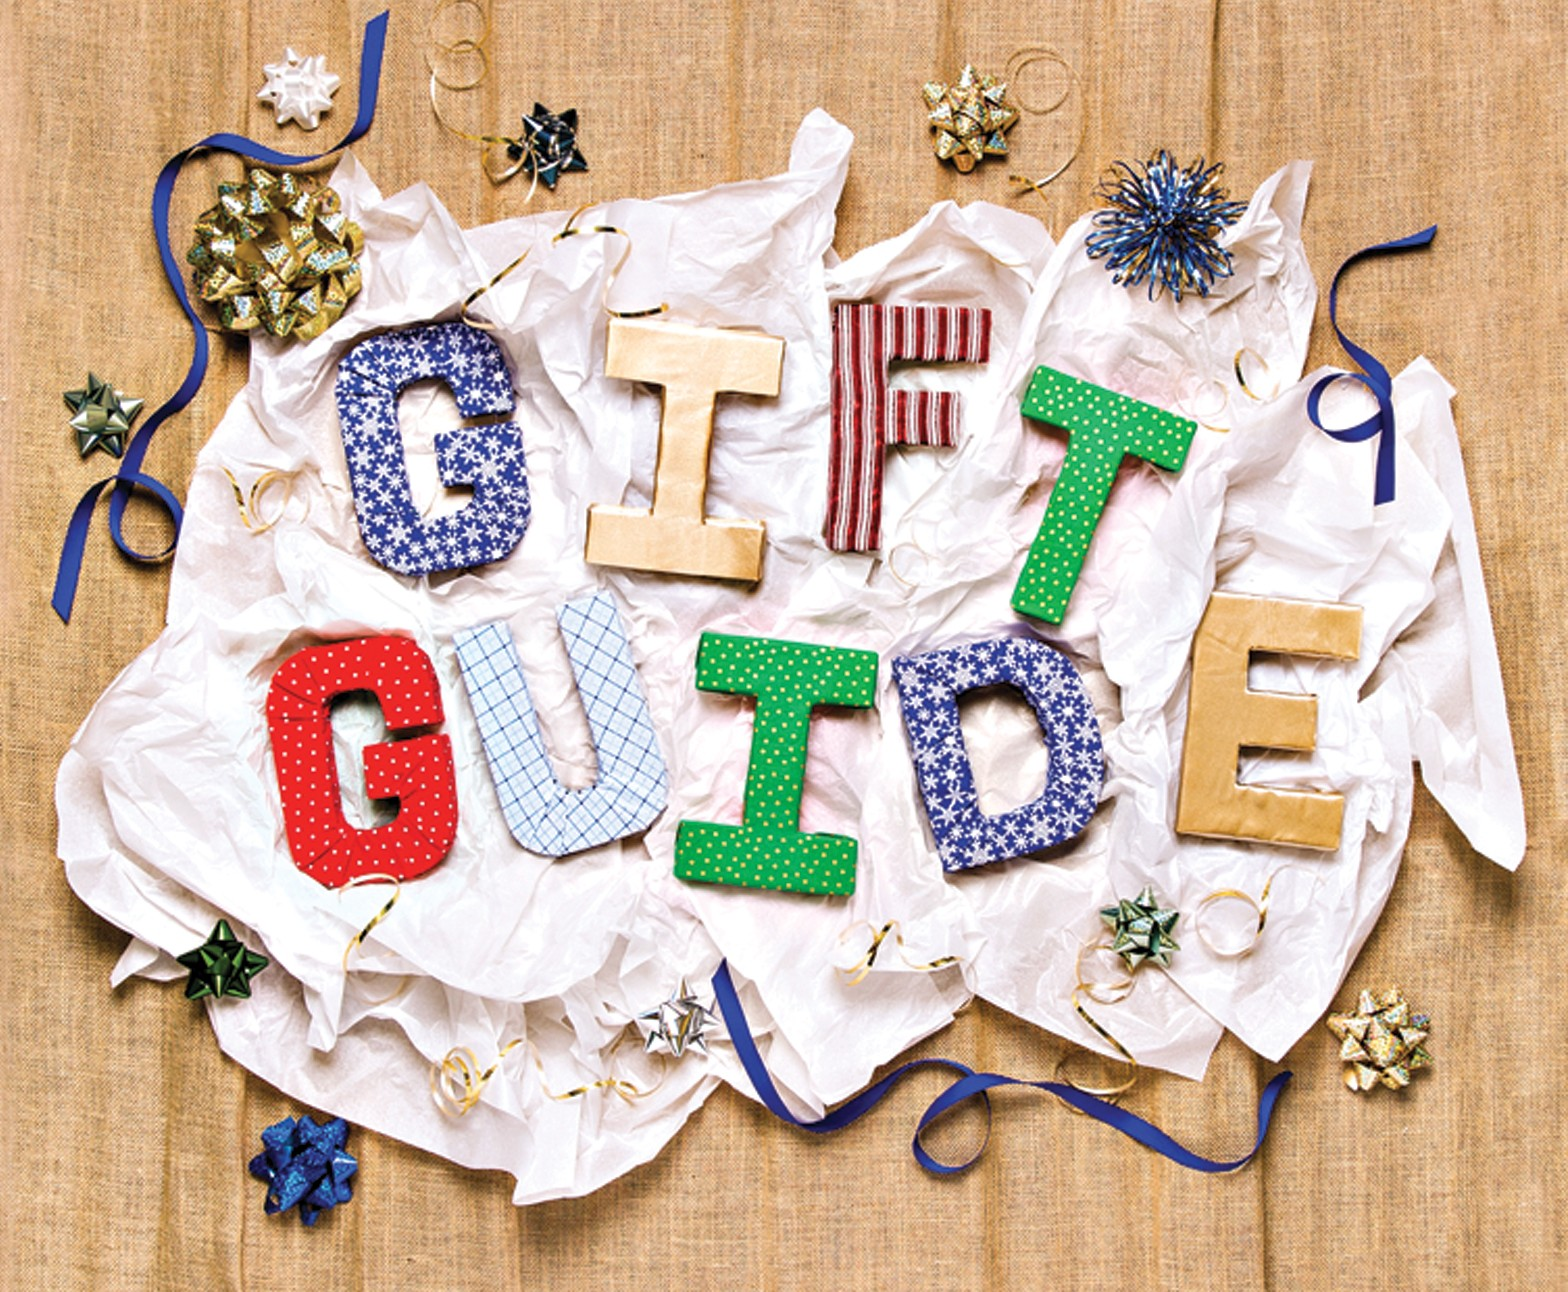 promo code 9e3a6 9d066 The 2018 Cleveland Gift Guide | News Features | Cleveland ...